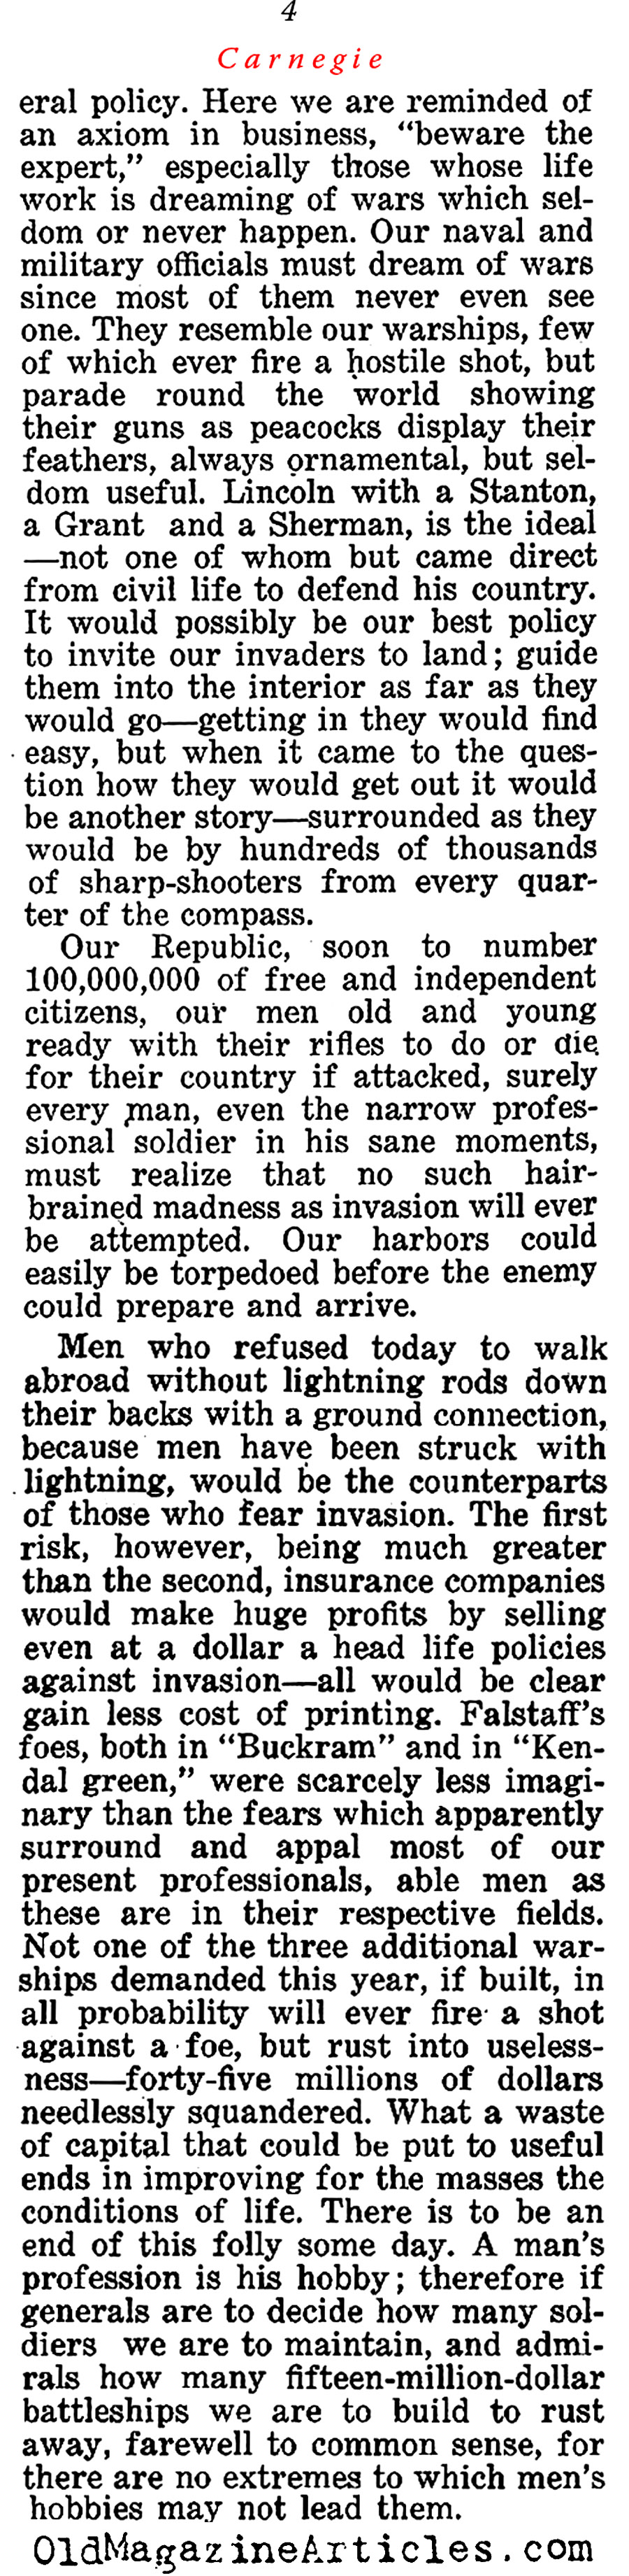 ''The Baseless Fear of War'' by Andrew Carnegie (The Independent, 1913)